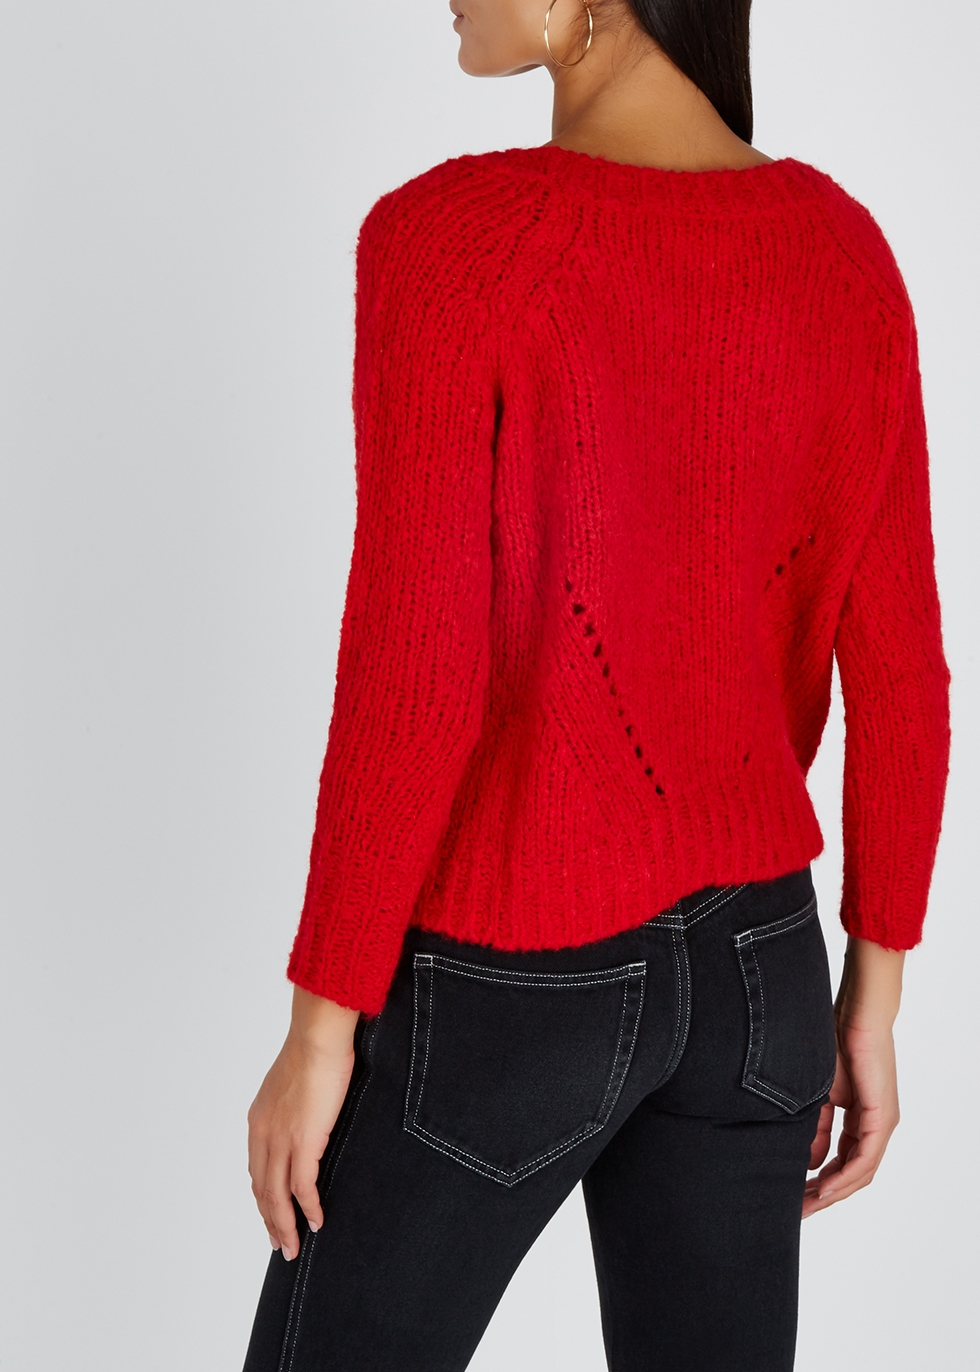 Shields red knitted jumper - Isabel Marant Étoile